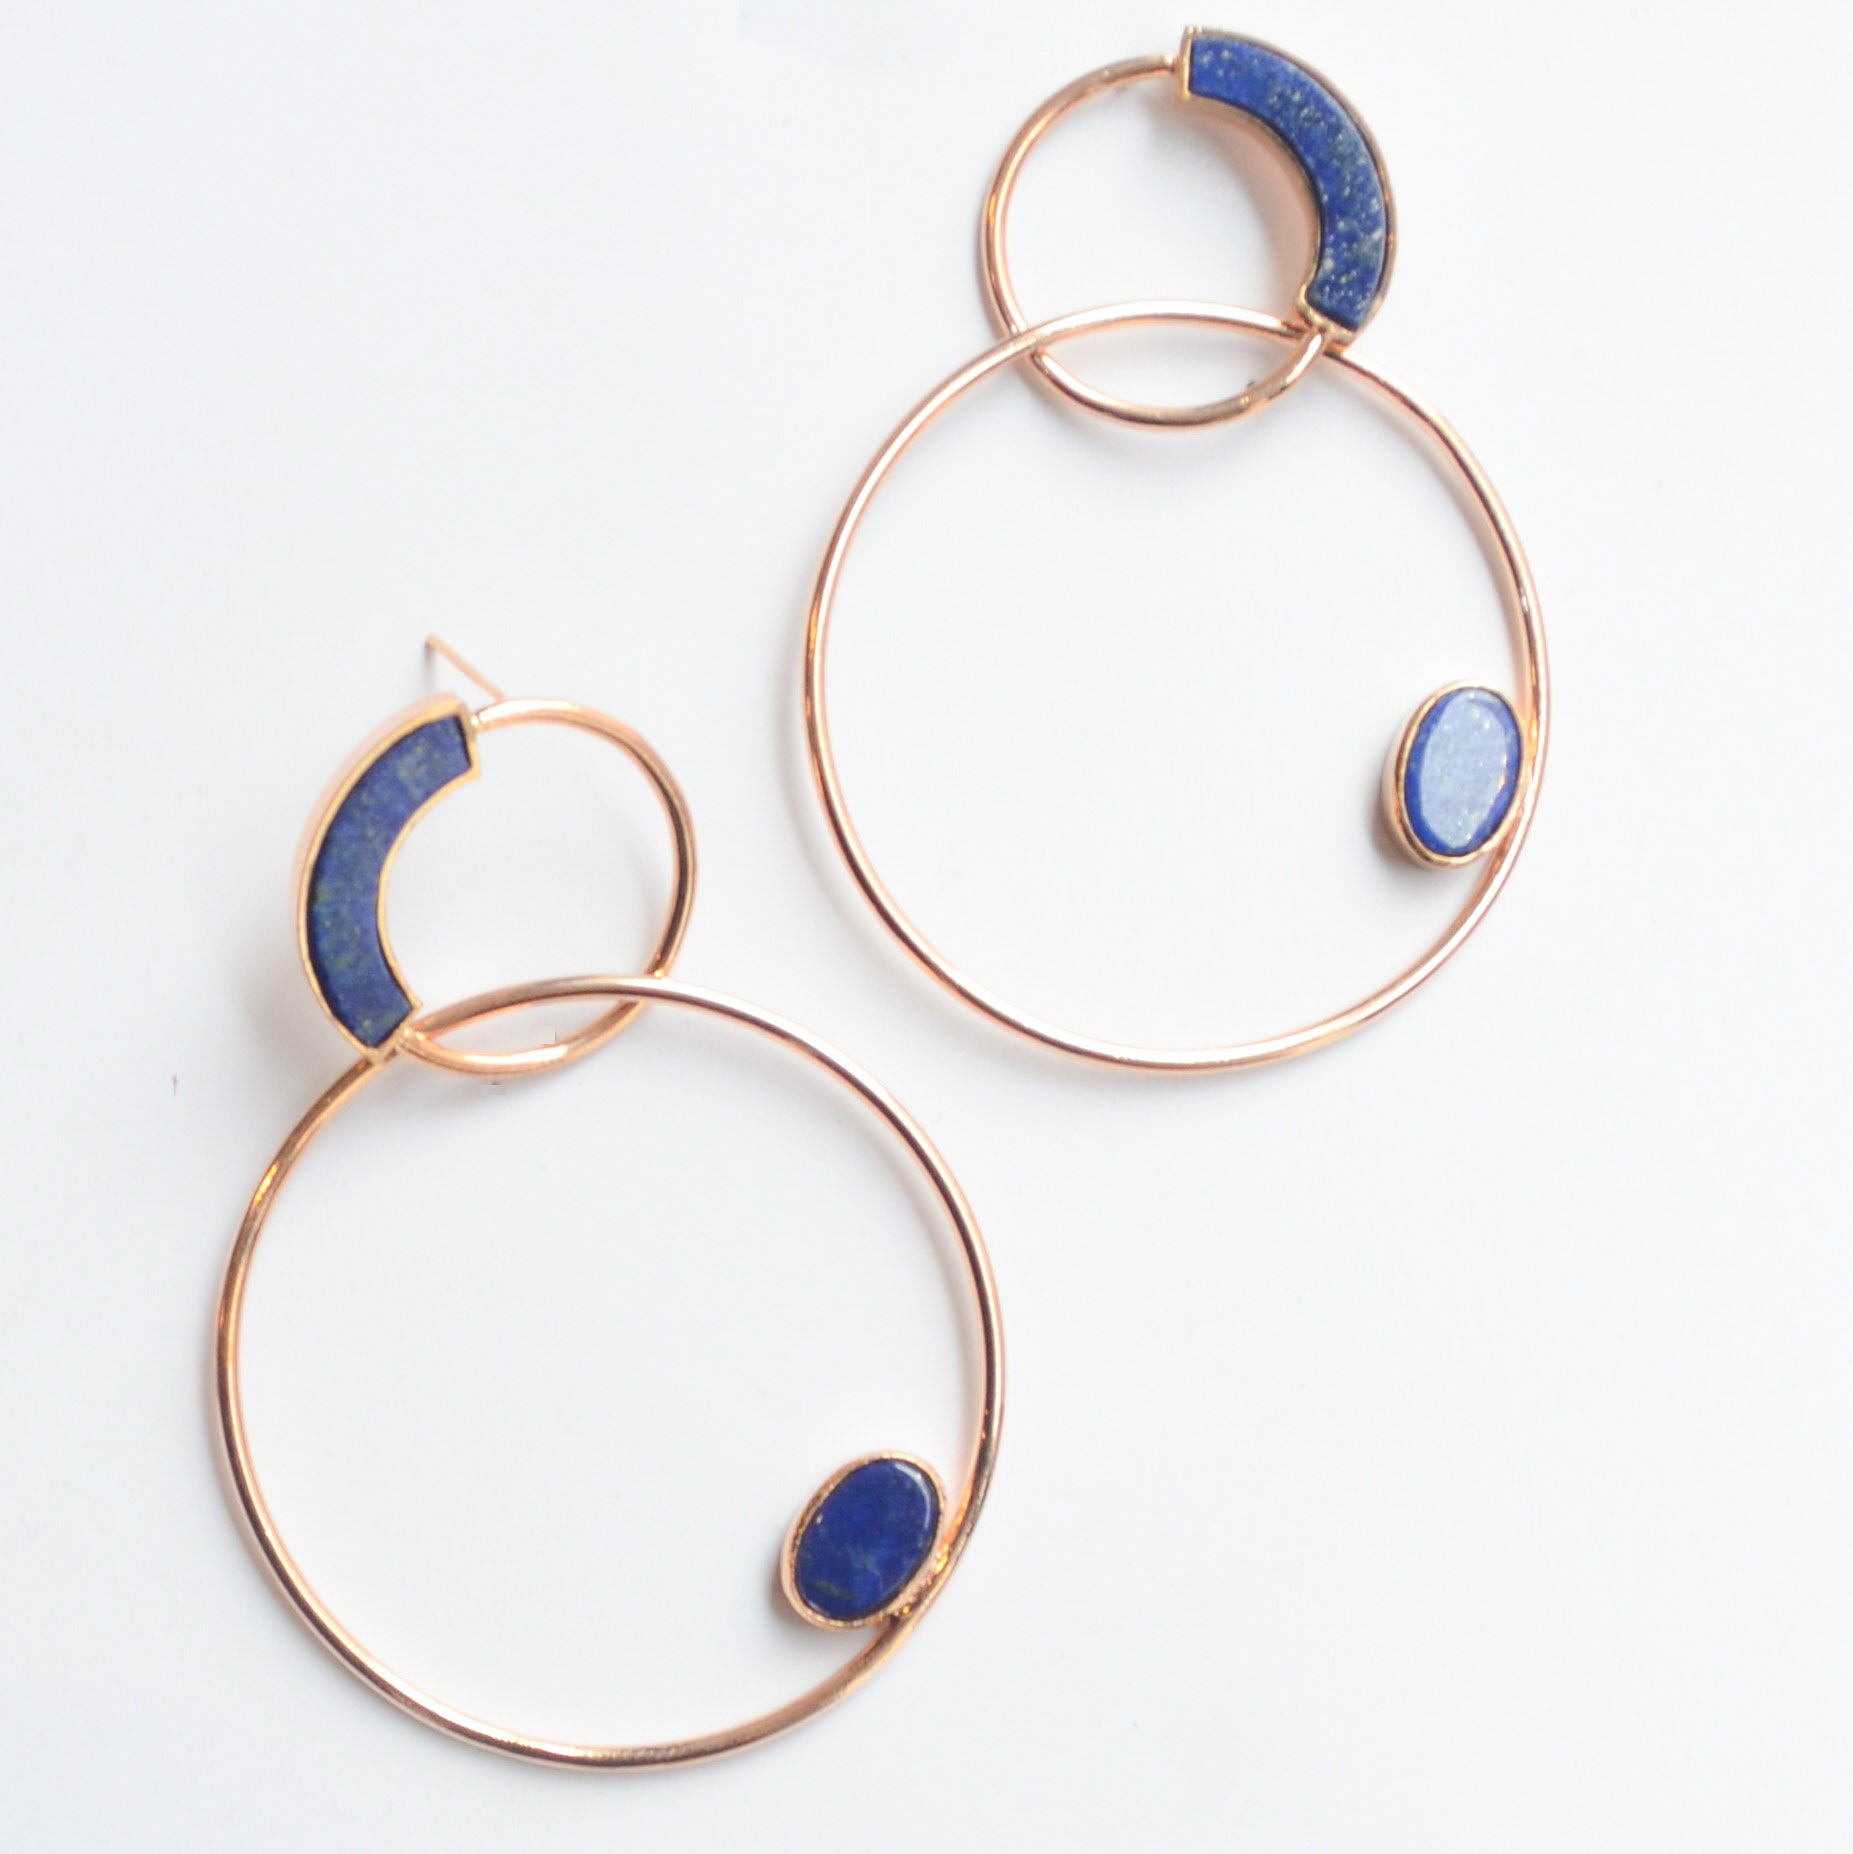 Double Entwine Lapiz Hoops